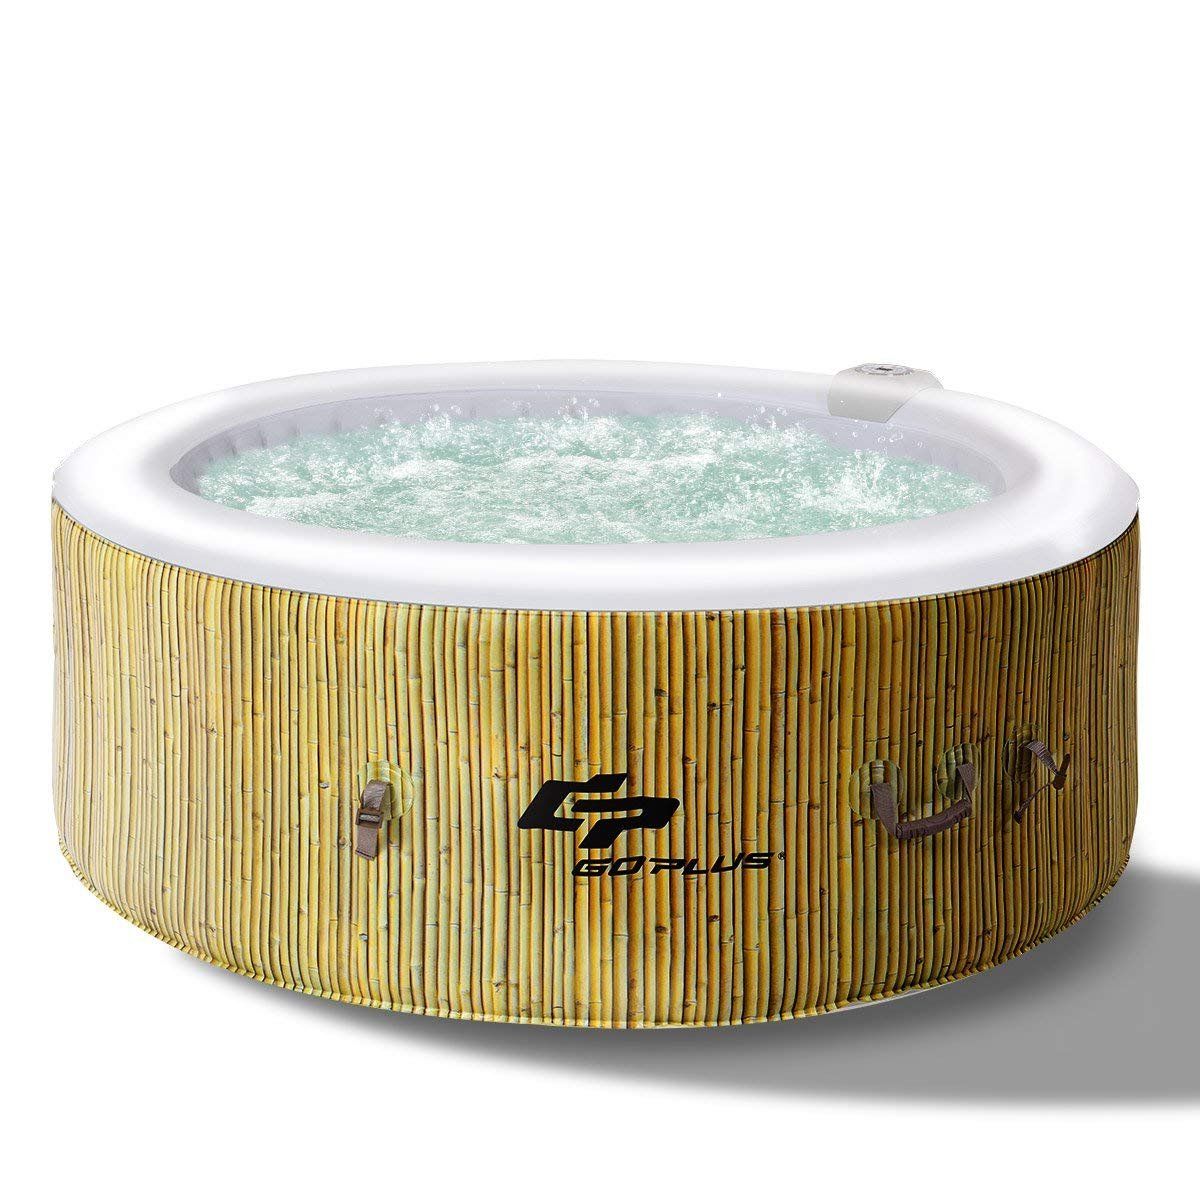 GOPLUS Inflatable Hot Tub - Inflatable Hot Tubs